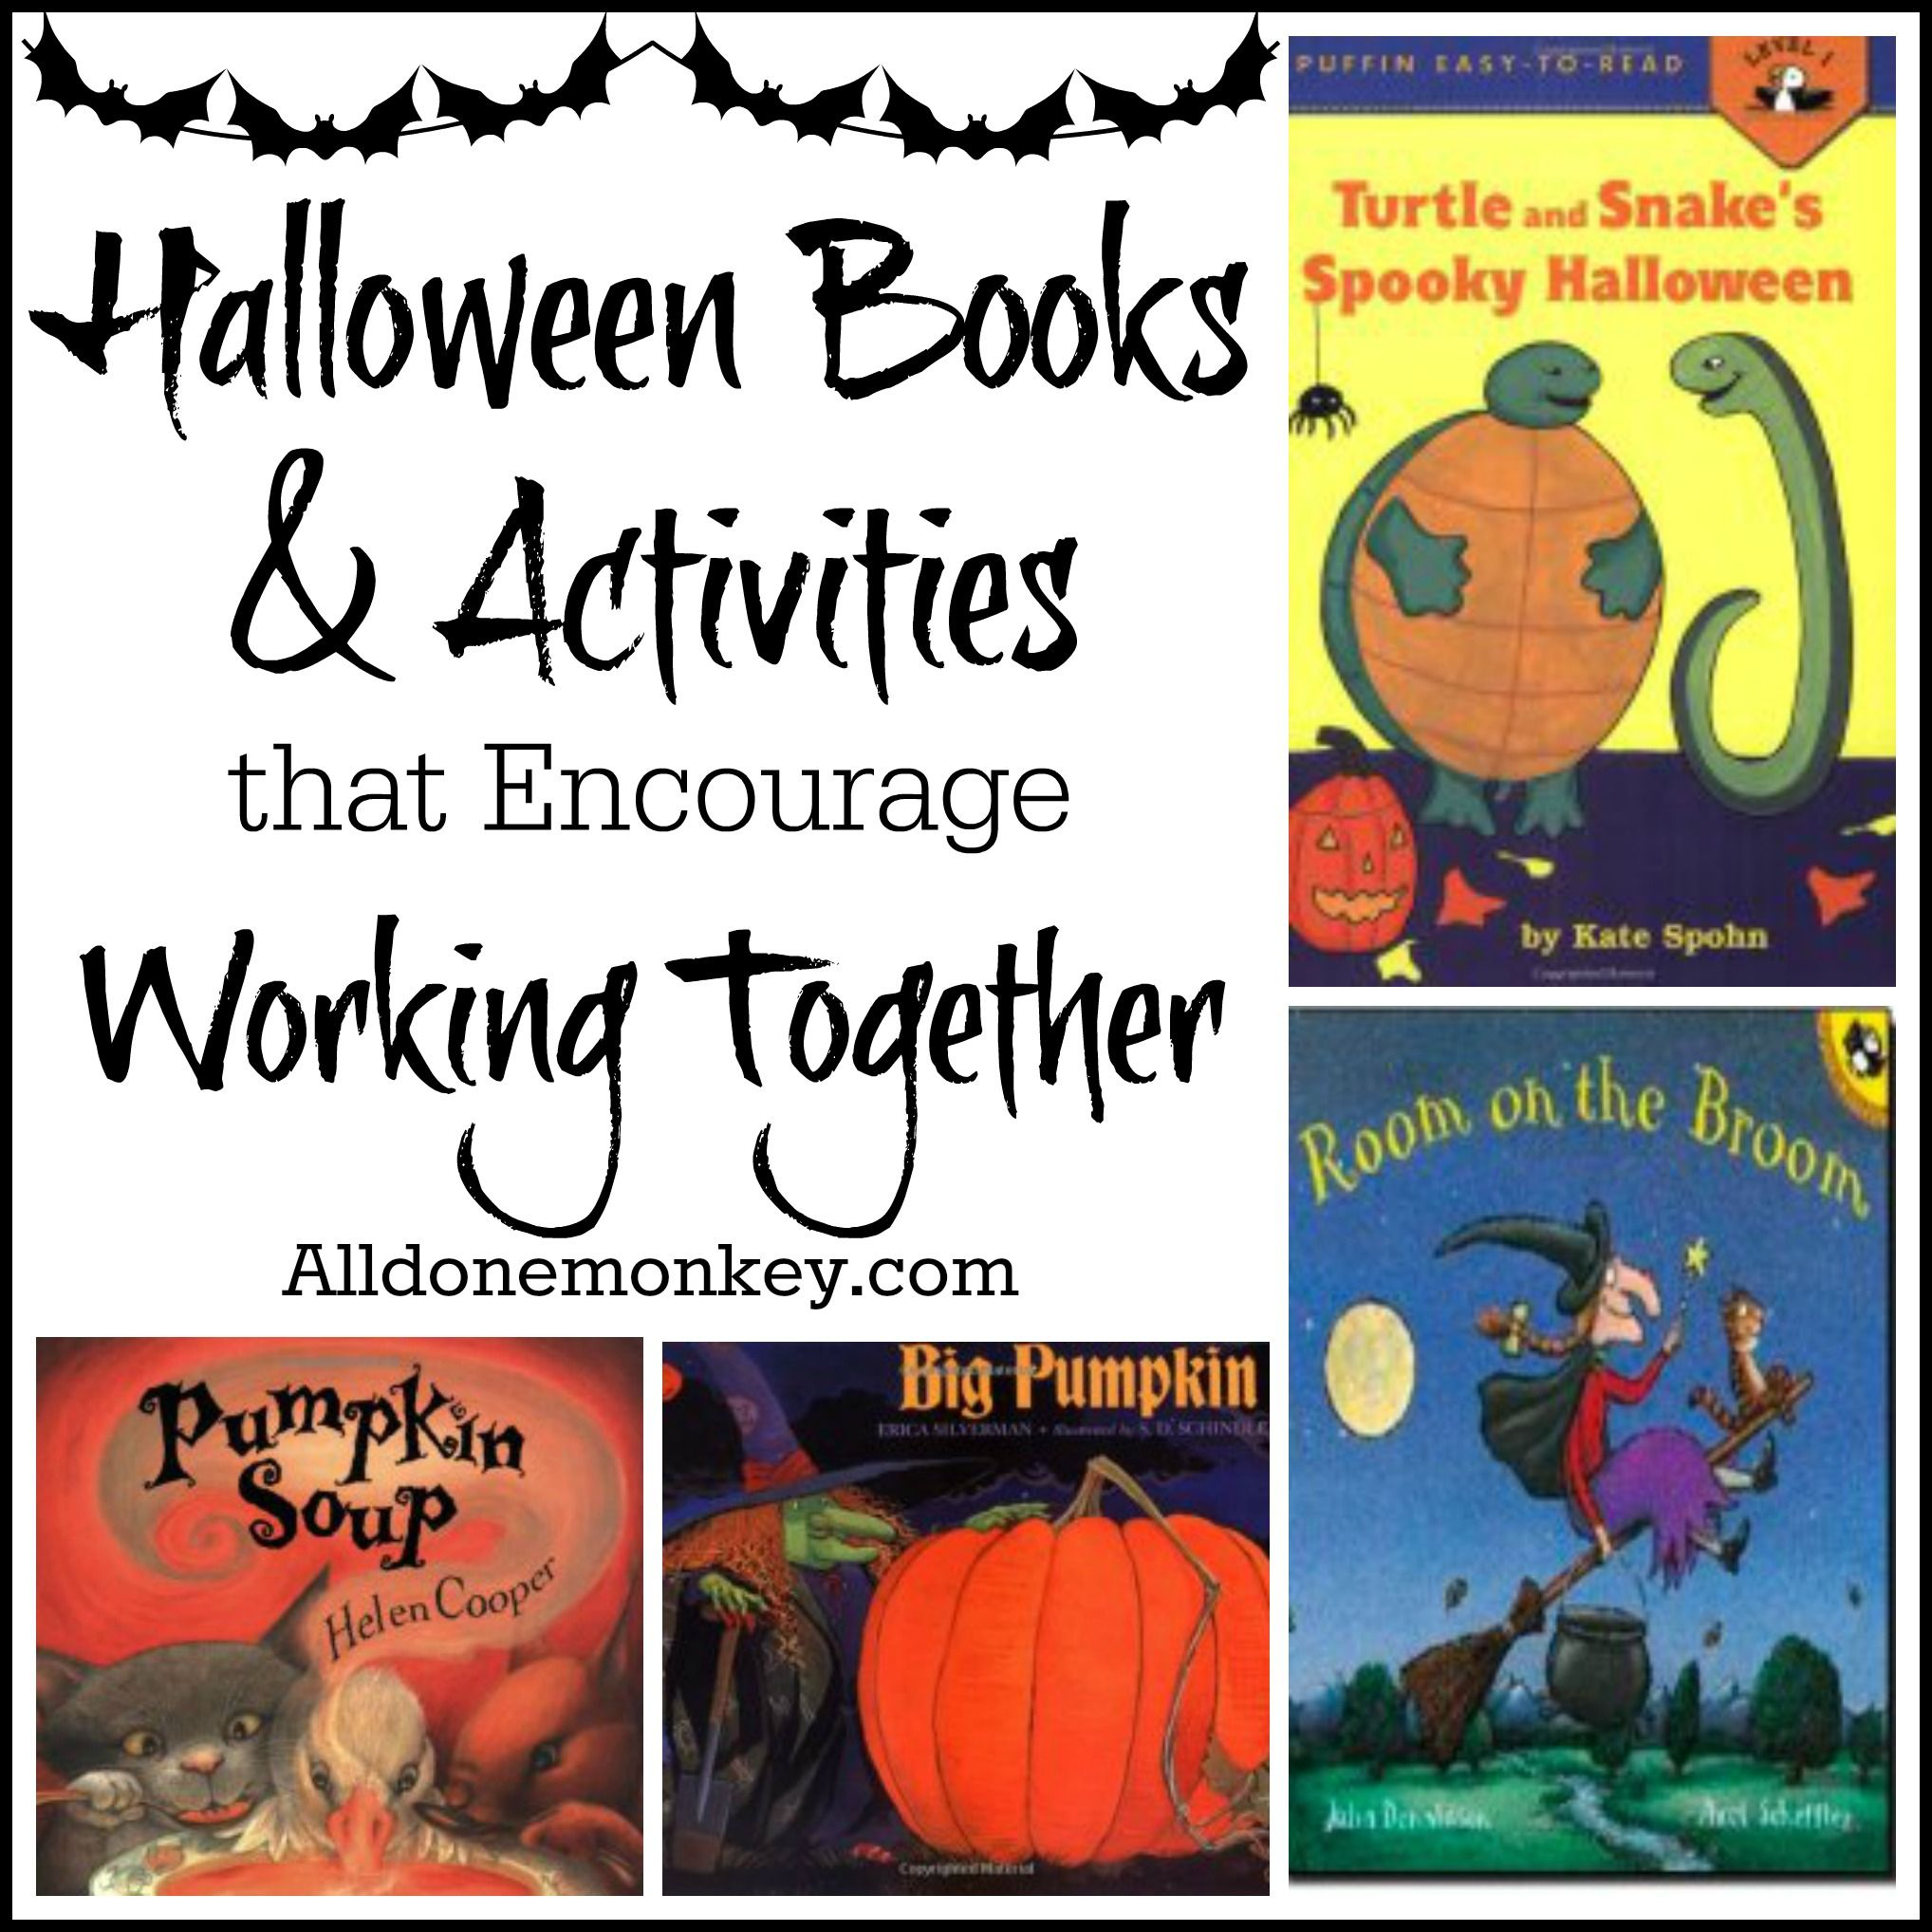 Halloween Books and Activities that Encourage Working